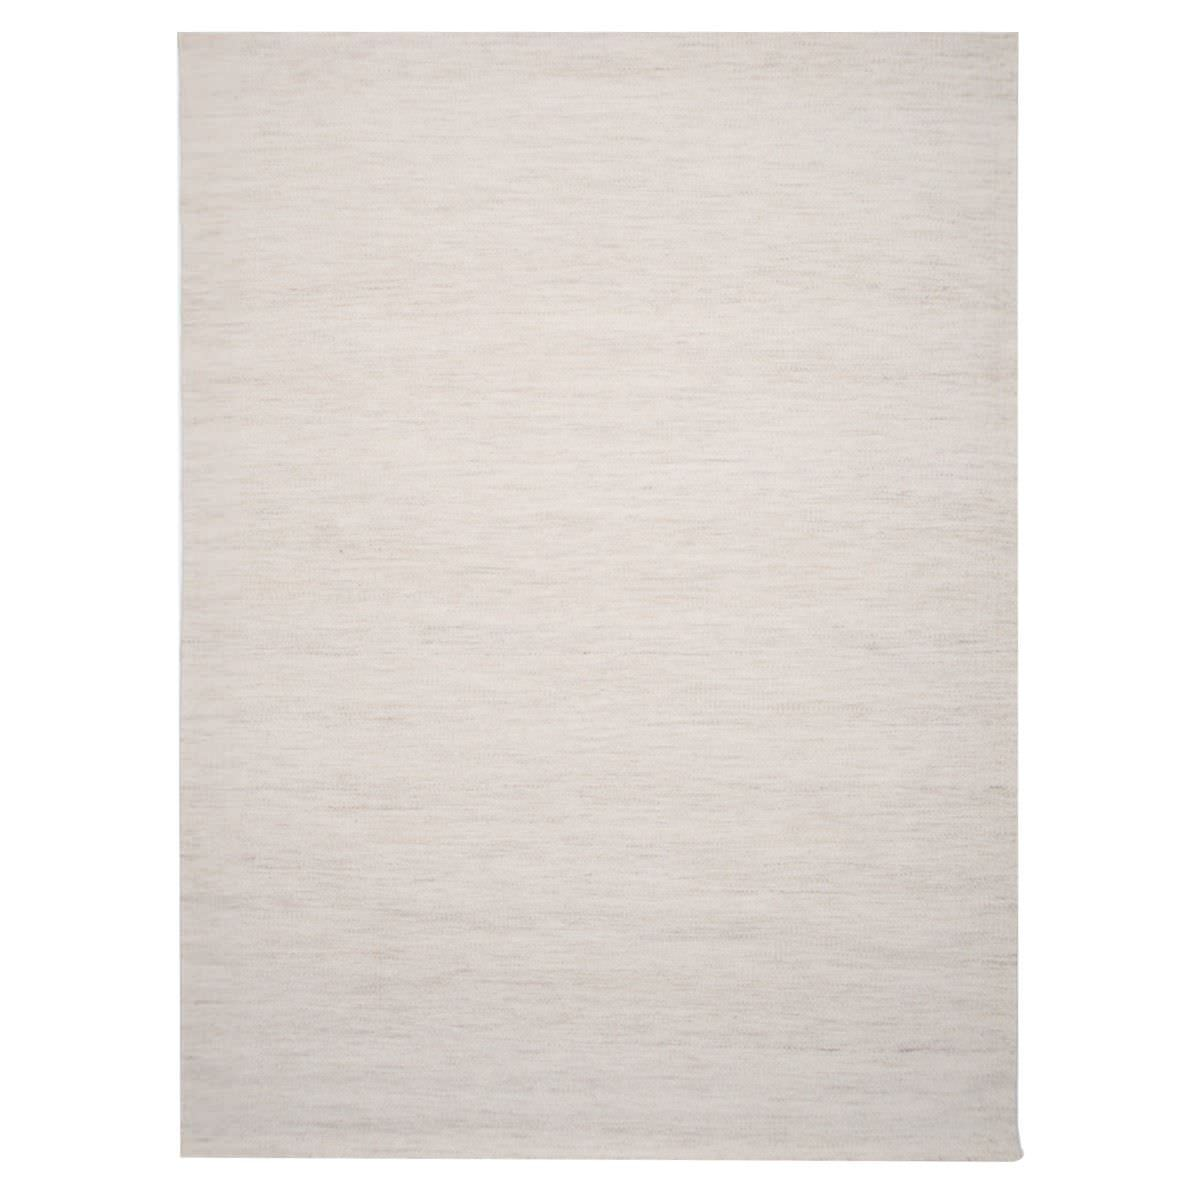 Capri Handwoven Wool Rug, 220x160cm, Natural